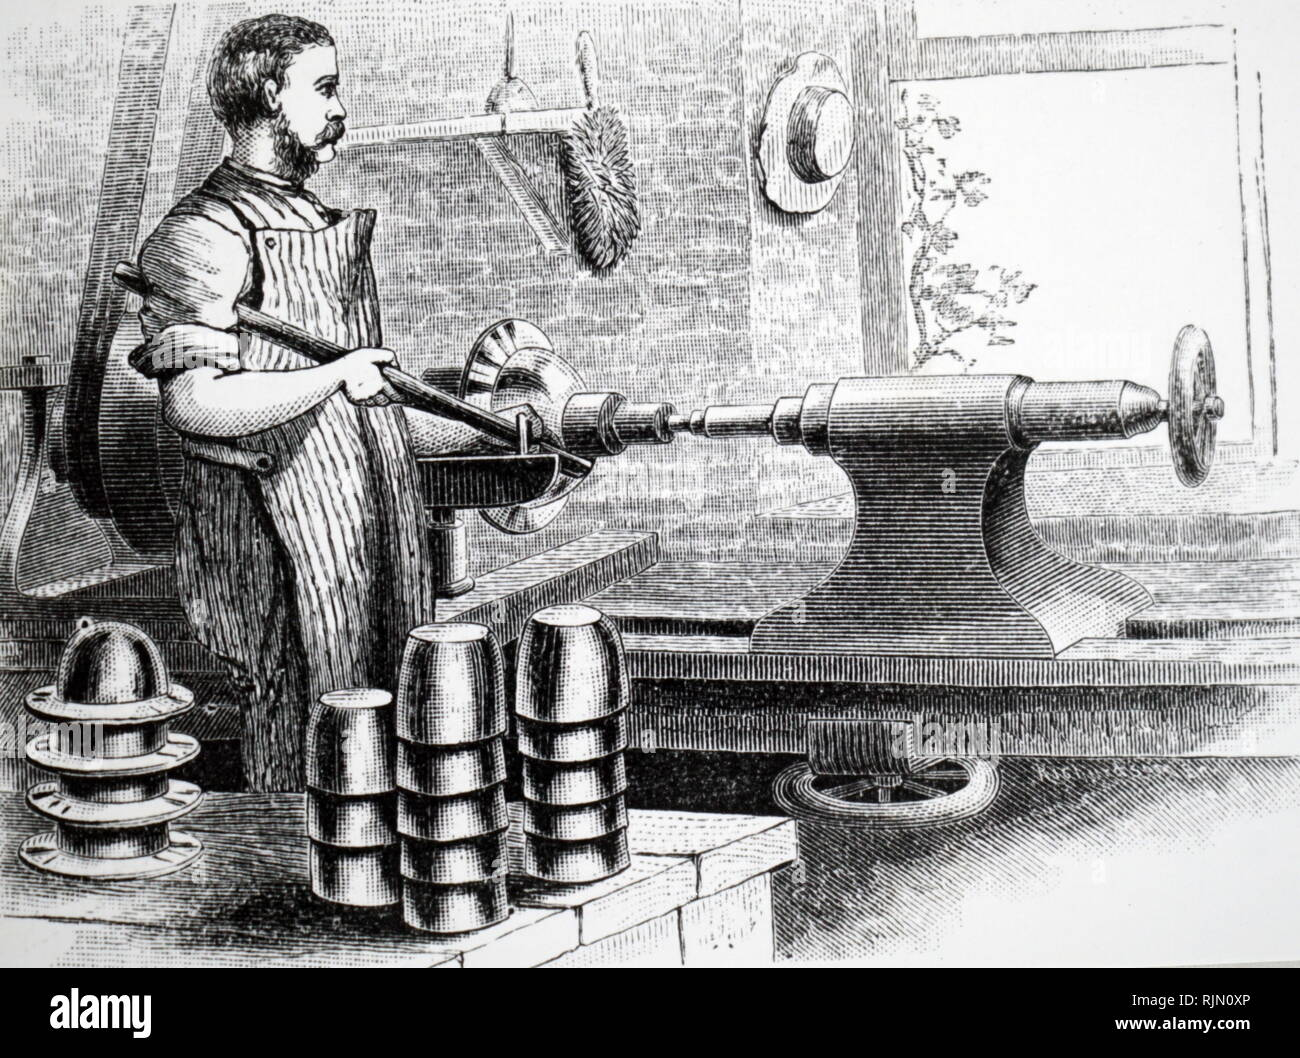 Illustration showing SPINNING METAL: method used to produce hollow-ware such as teapots, dish covers, powder horns, 1880 - Stock Image